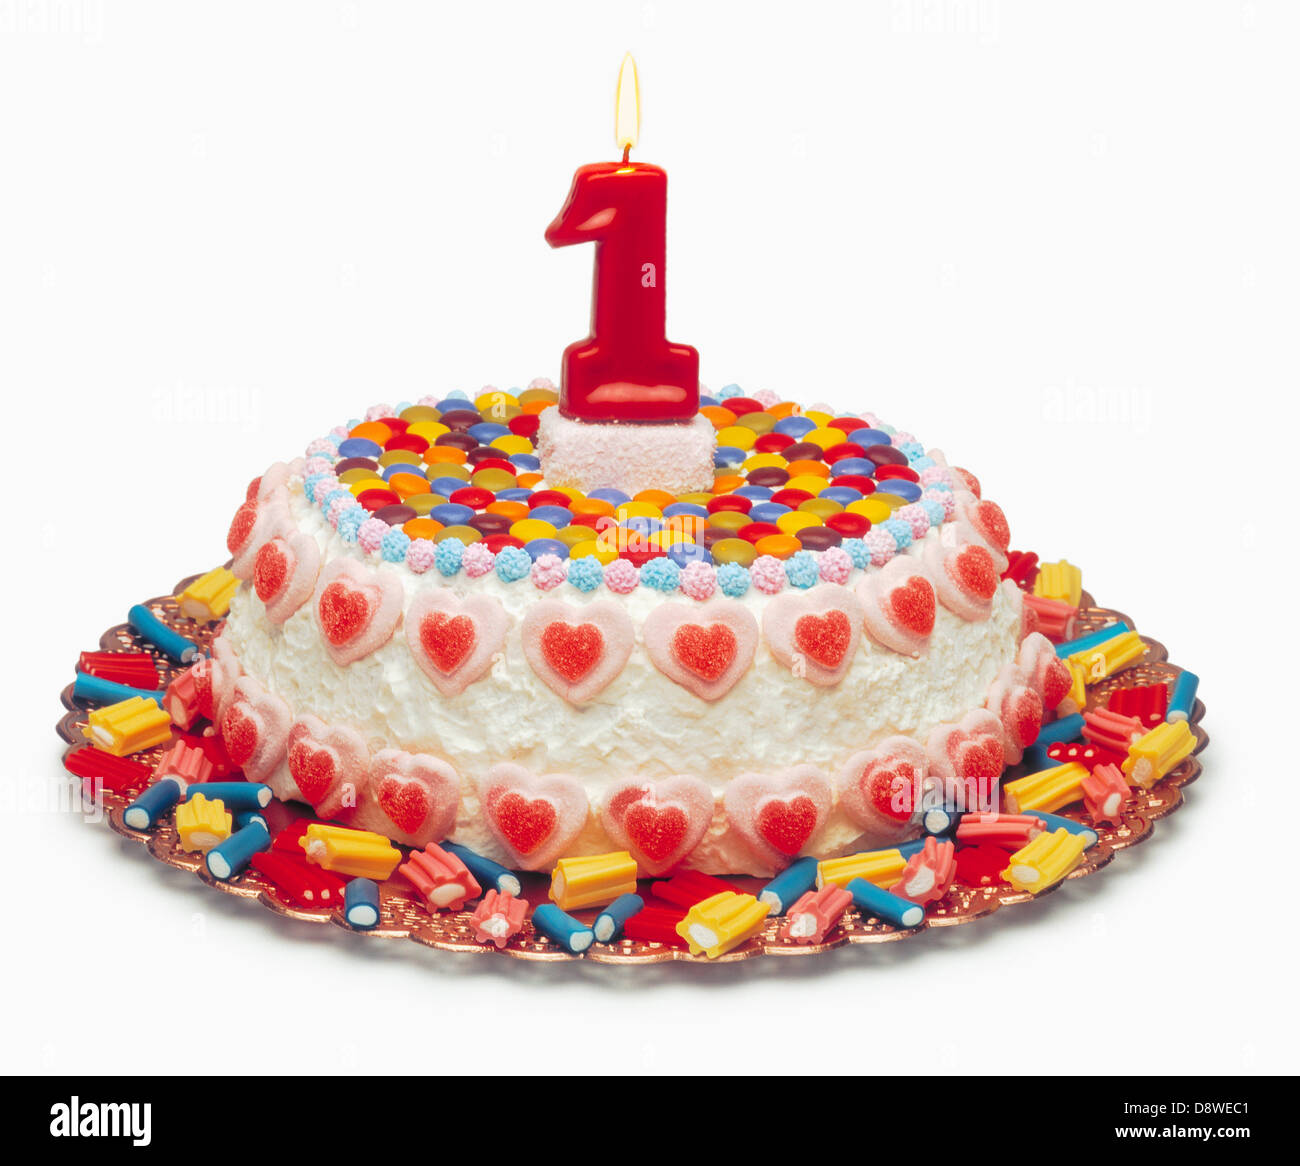 Cake 1 Year Old Birthday : 1 year old Birthday cake Stock Photo, Royalty Free Image ...